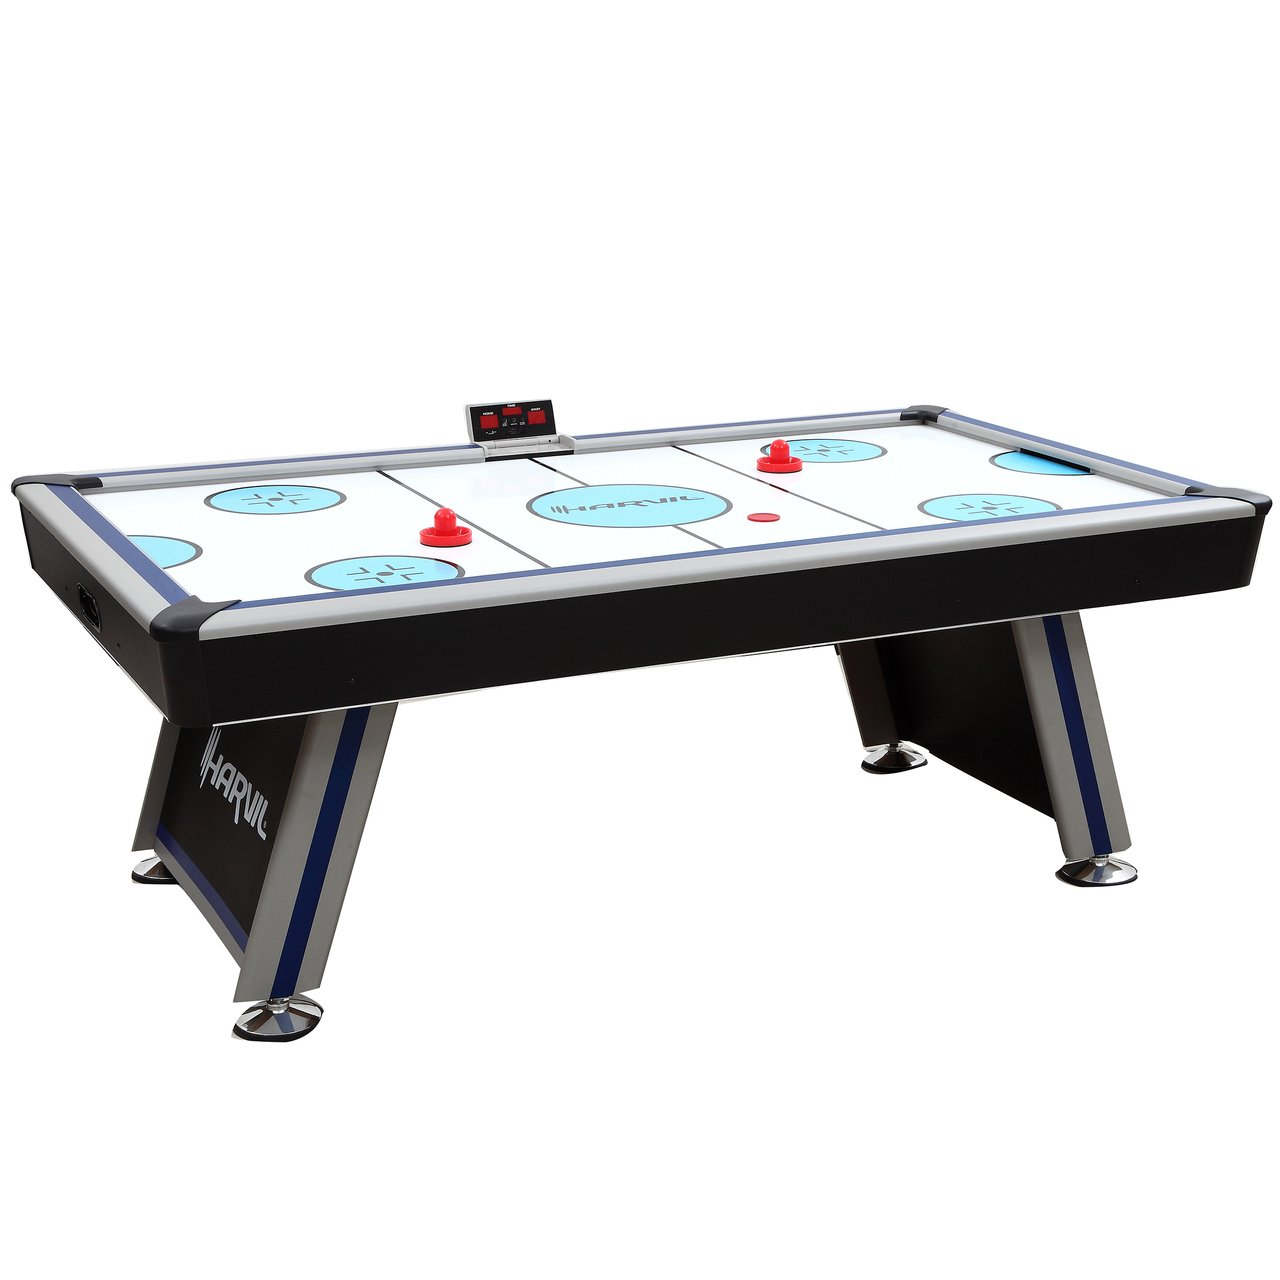 Harvil 7 Foot Air Hockey Game Table Full Size for Kids and Adults with Powerful Dual Electric Blowers, Paddles and Pucks